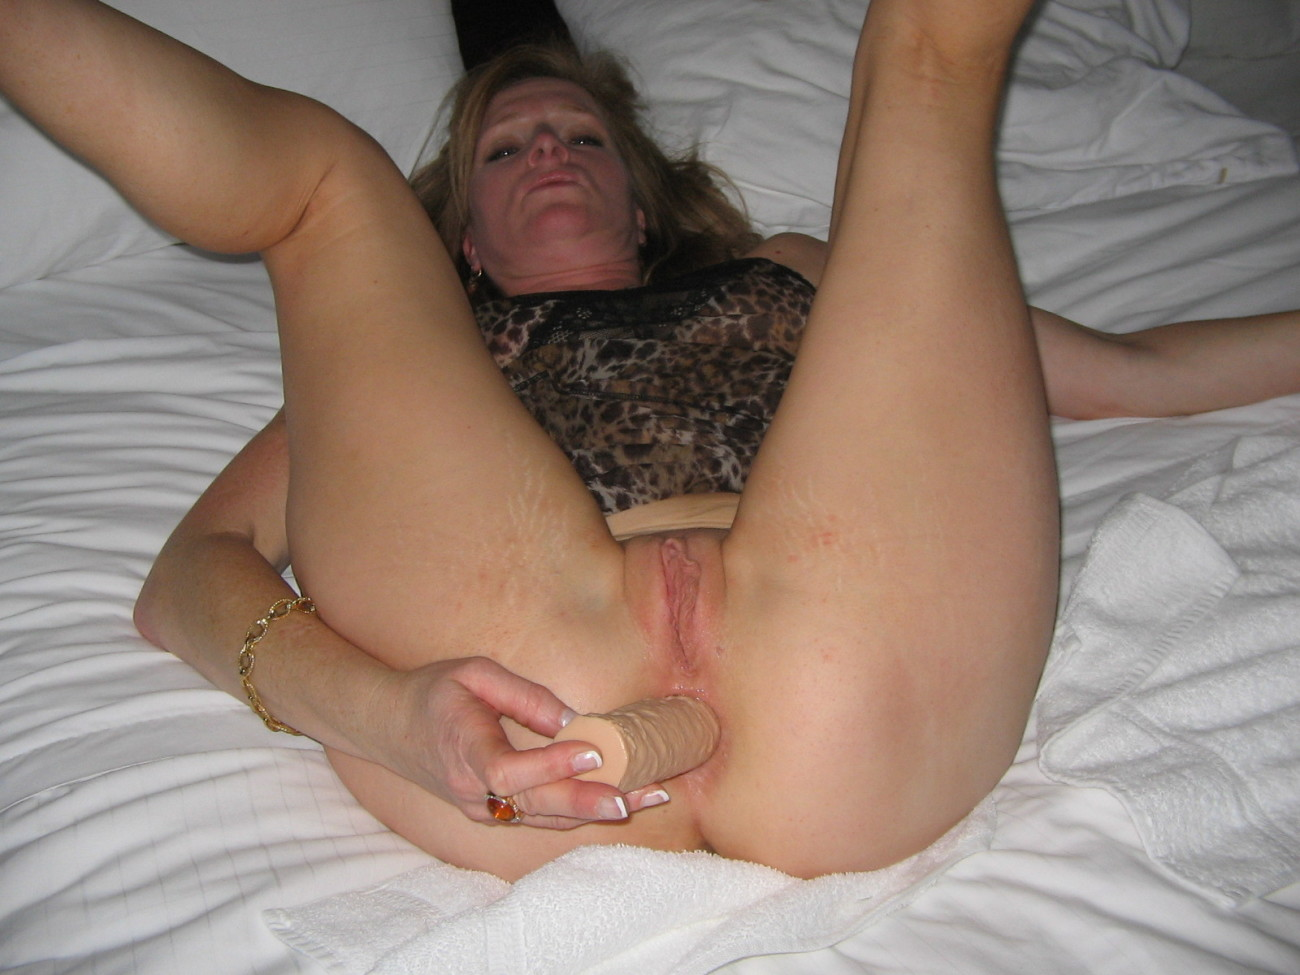 Wives with sex toys, skinny puerto rican chick naked